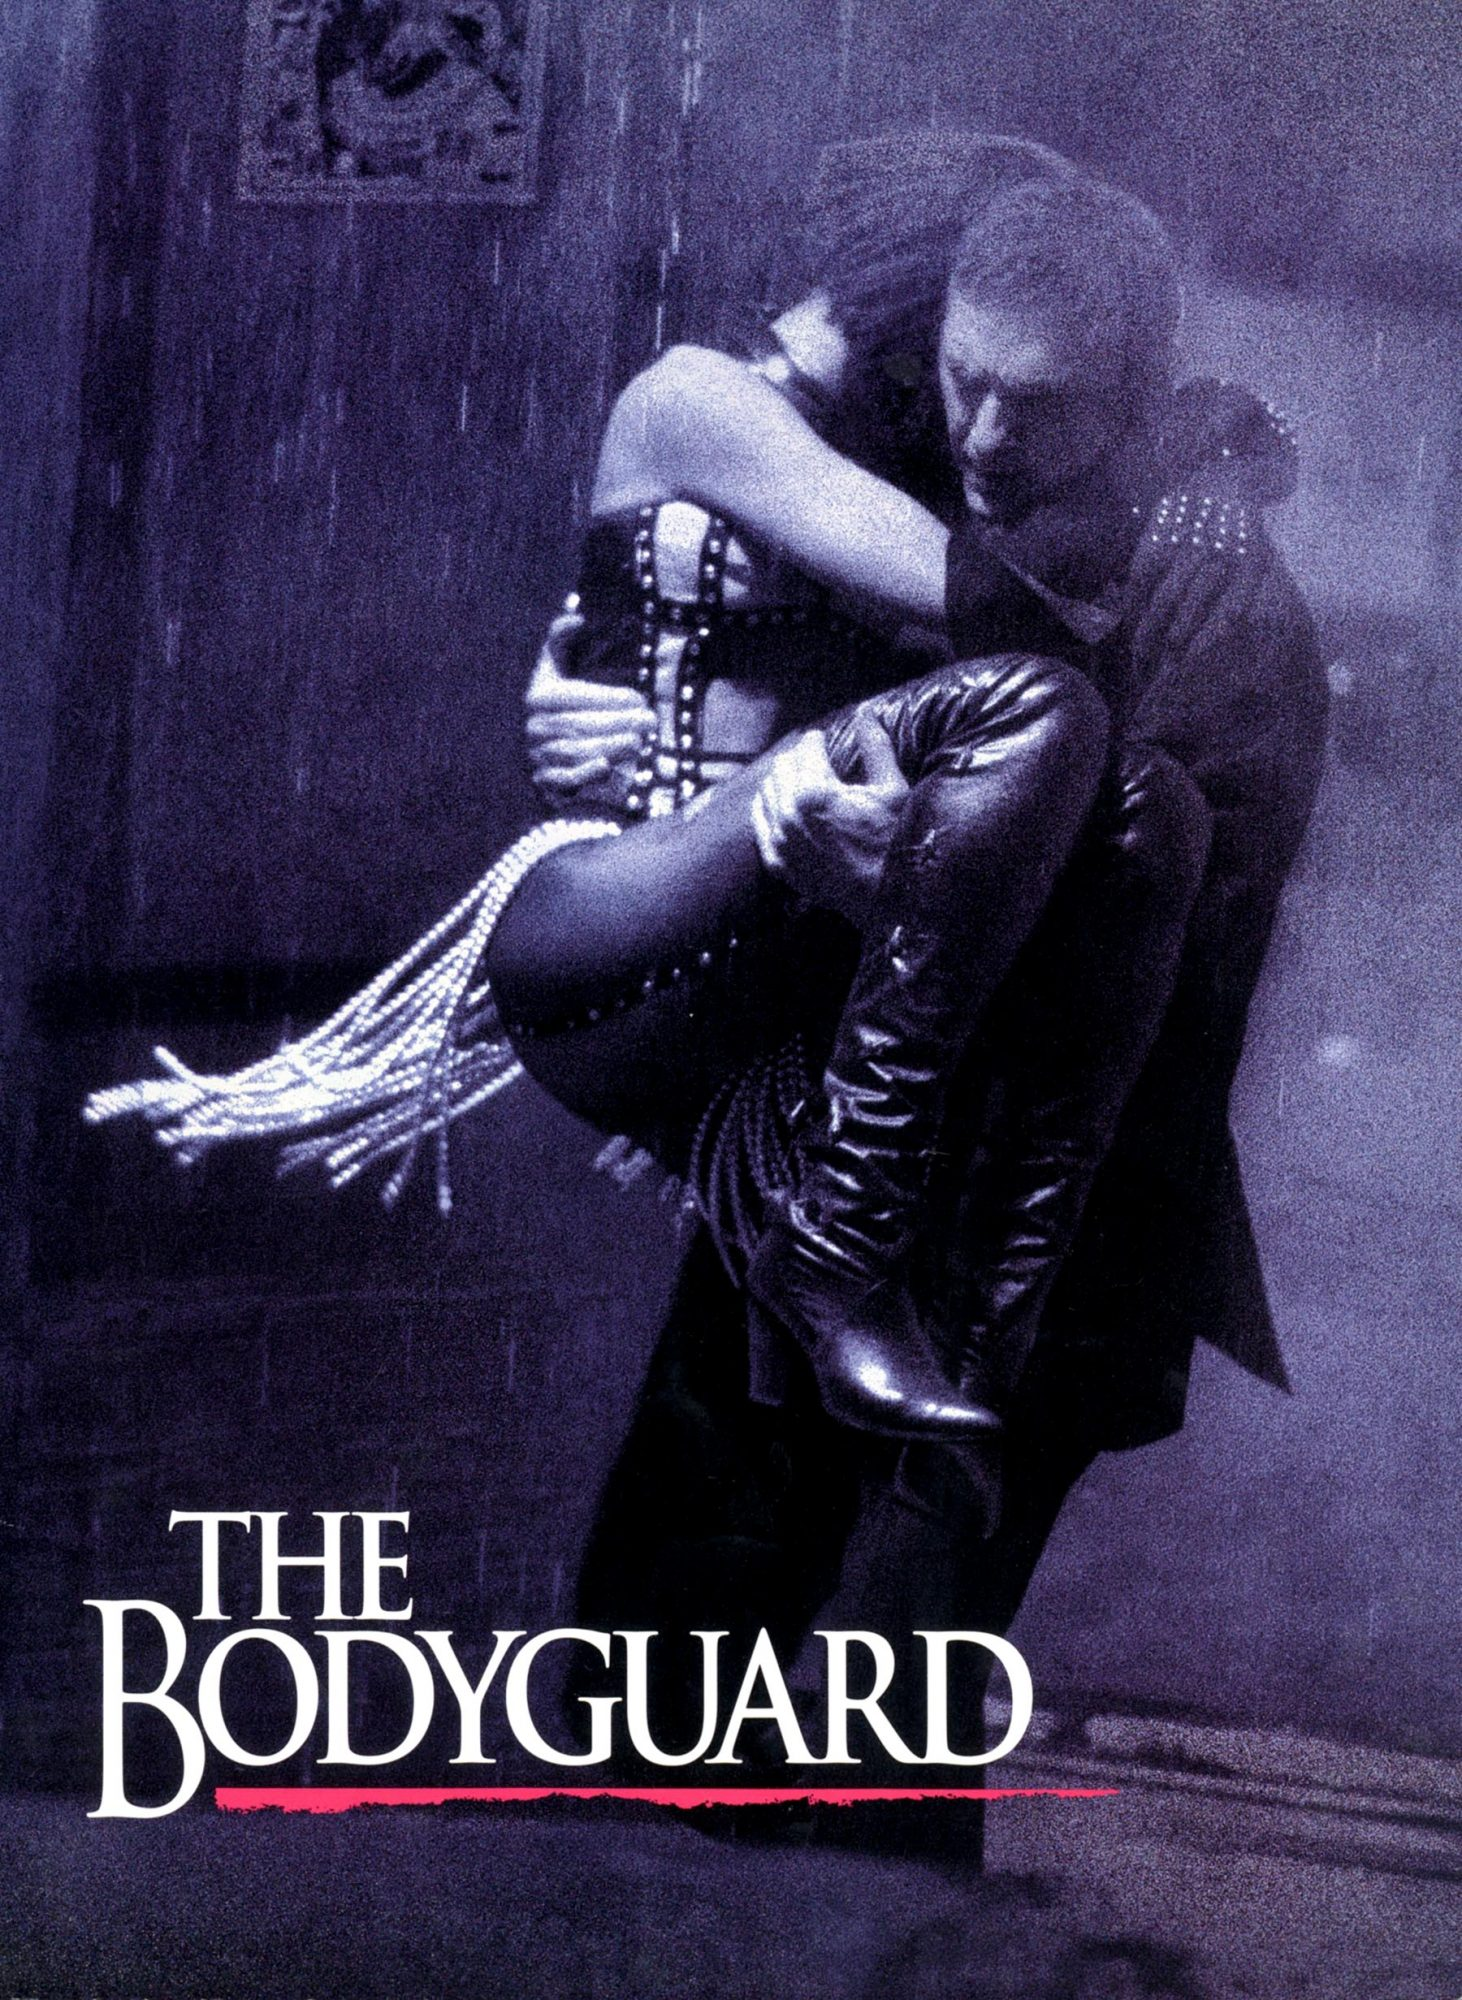 THE BODYGUARD US 1992 KEVIN COSTNER Date 1992, Photo by: Mary Evans/WARNER BROS/Ronald Grant/Everett Collection(10303647)